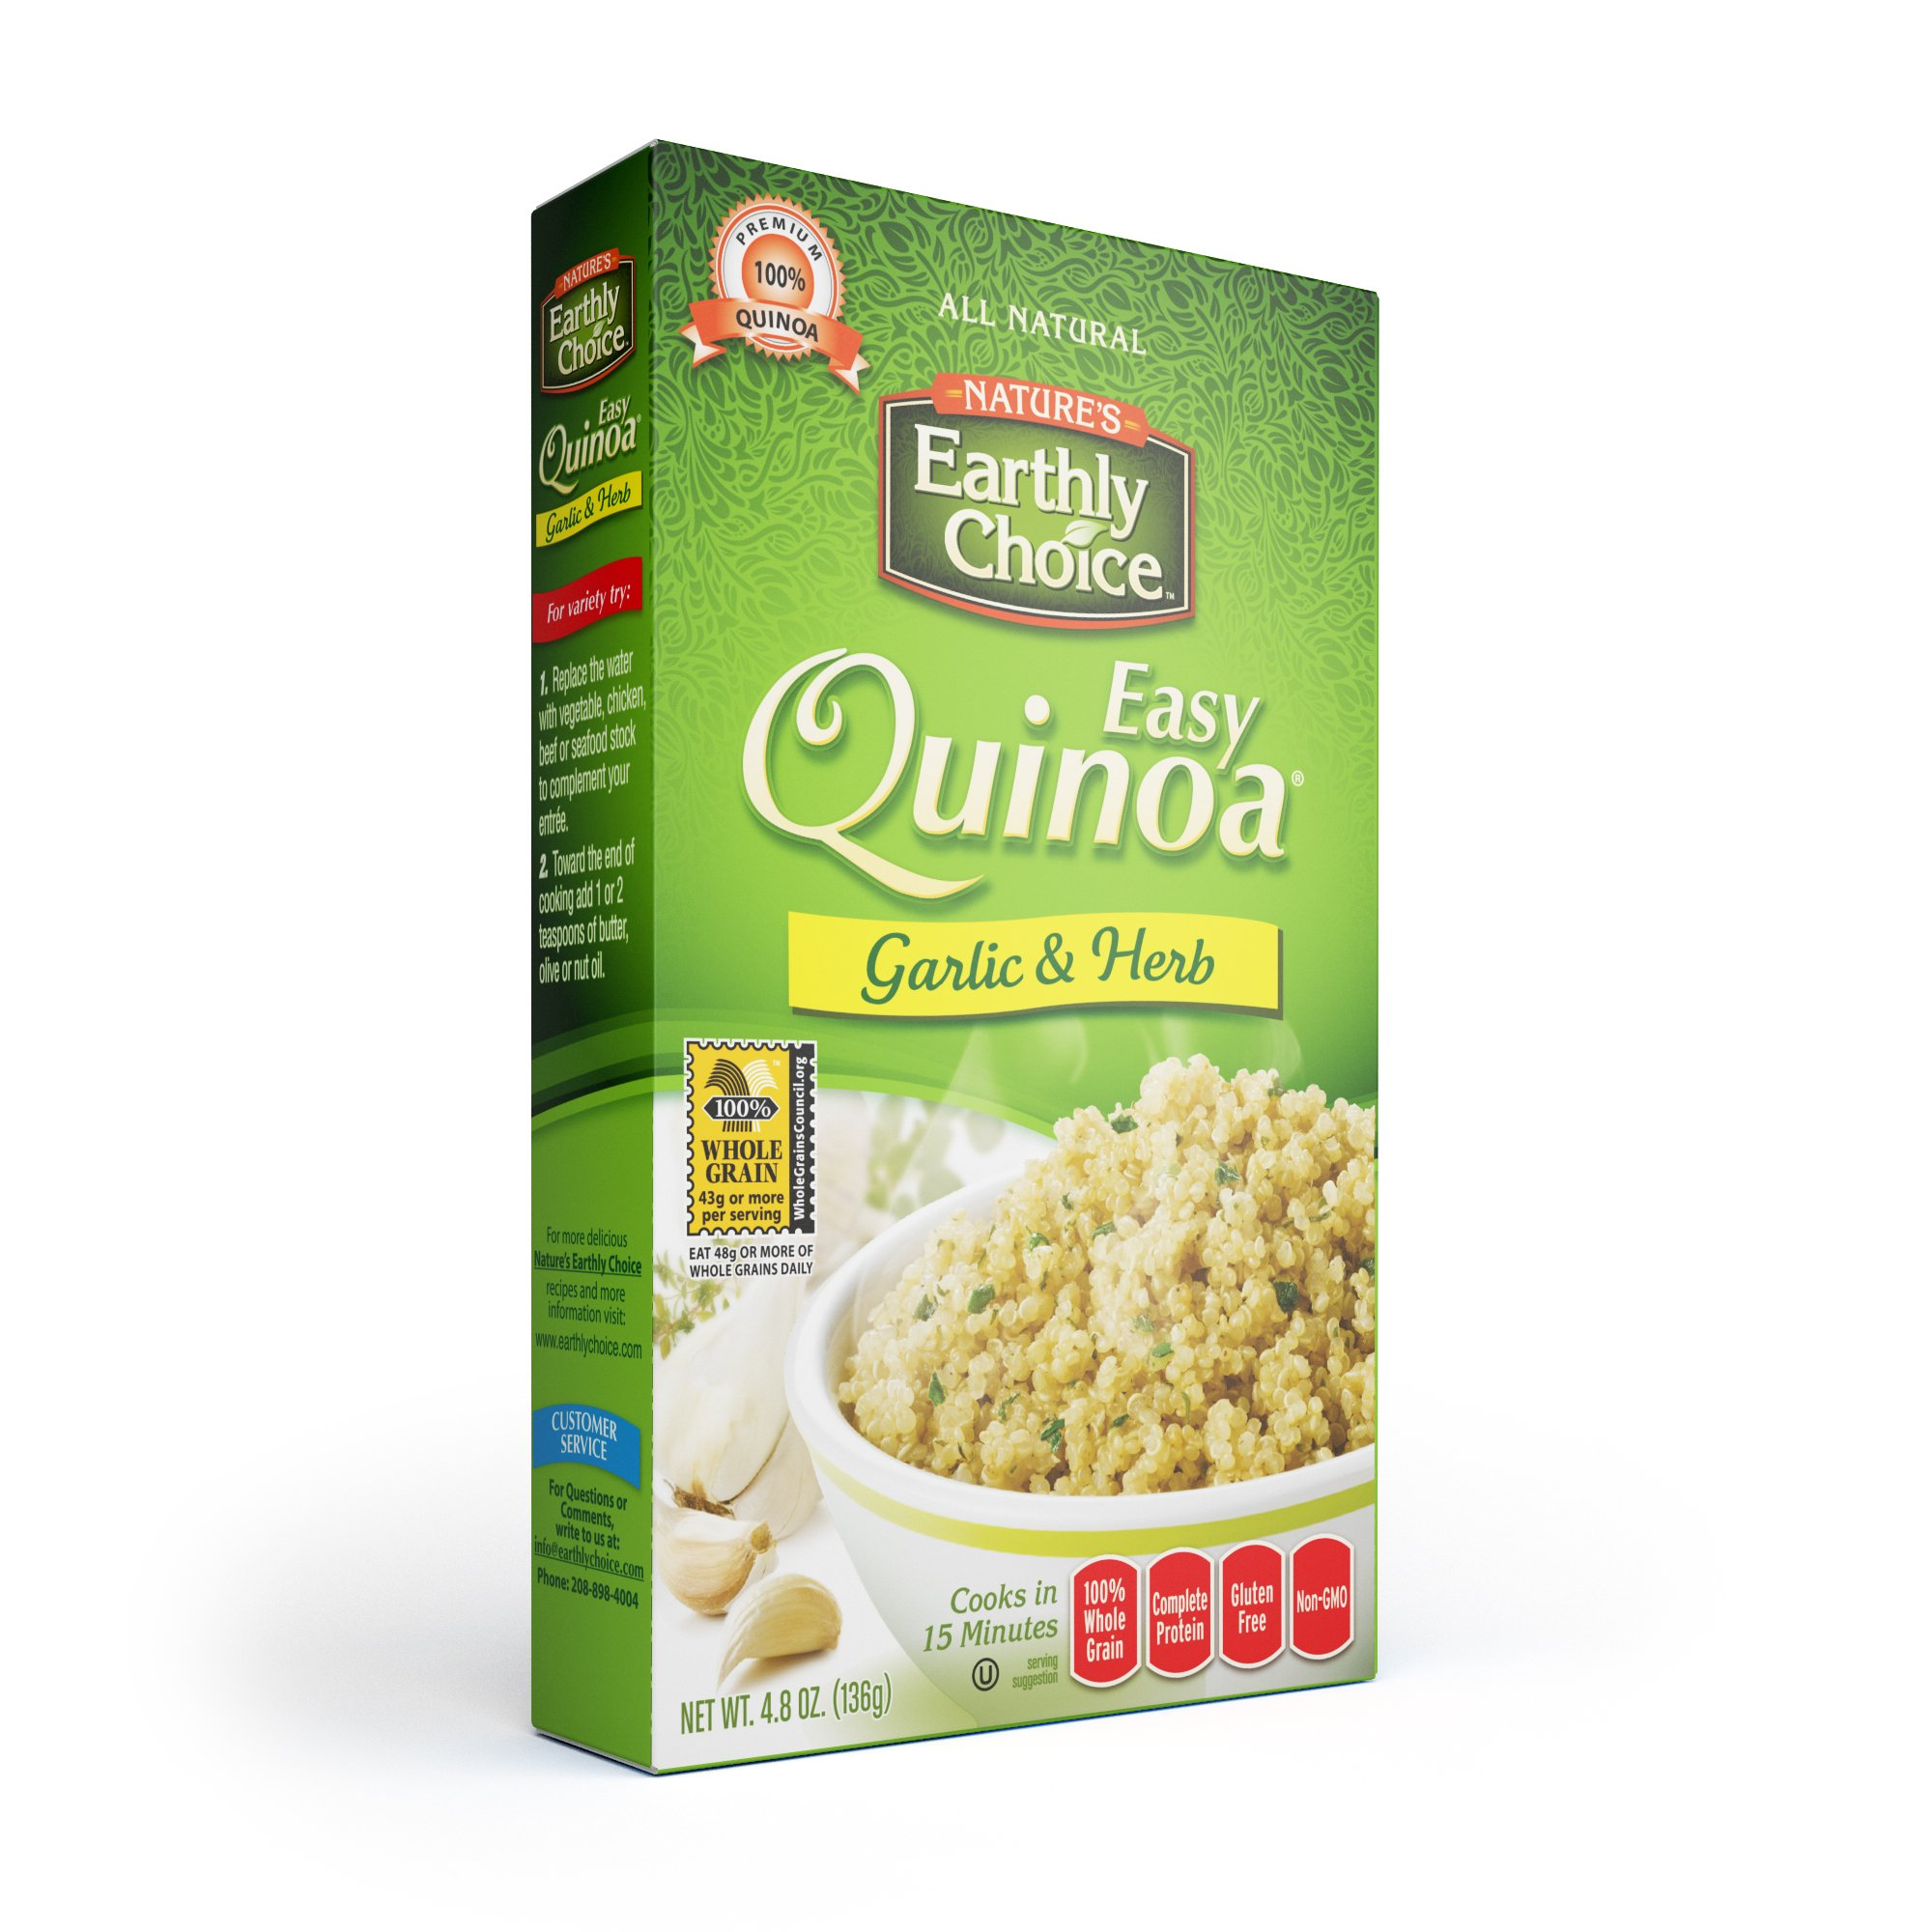 Nature's Earthly Choice Garlic and Herb Quinoa, 4.8 Ounce (Pack of 6)